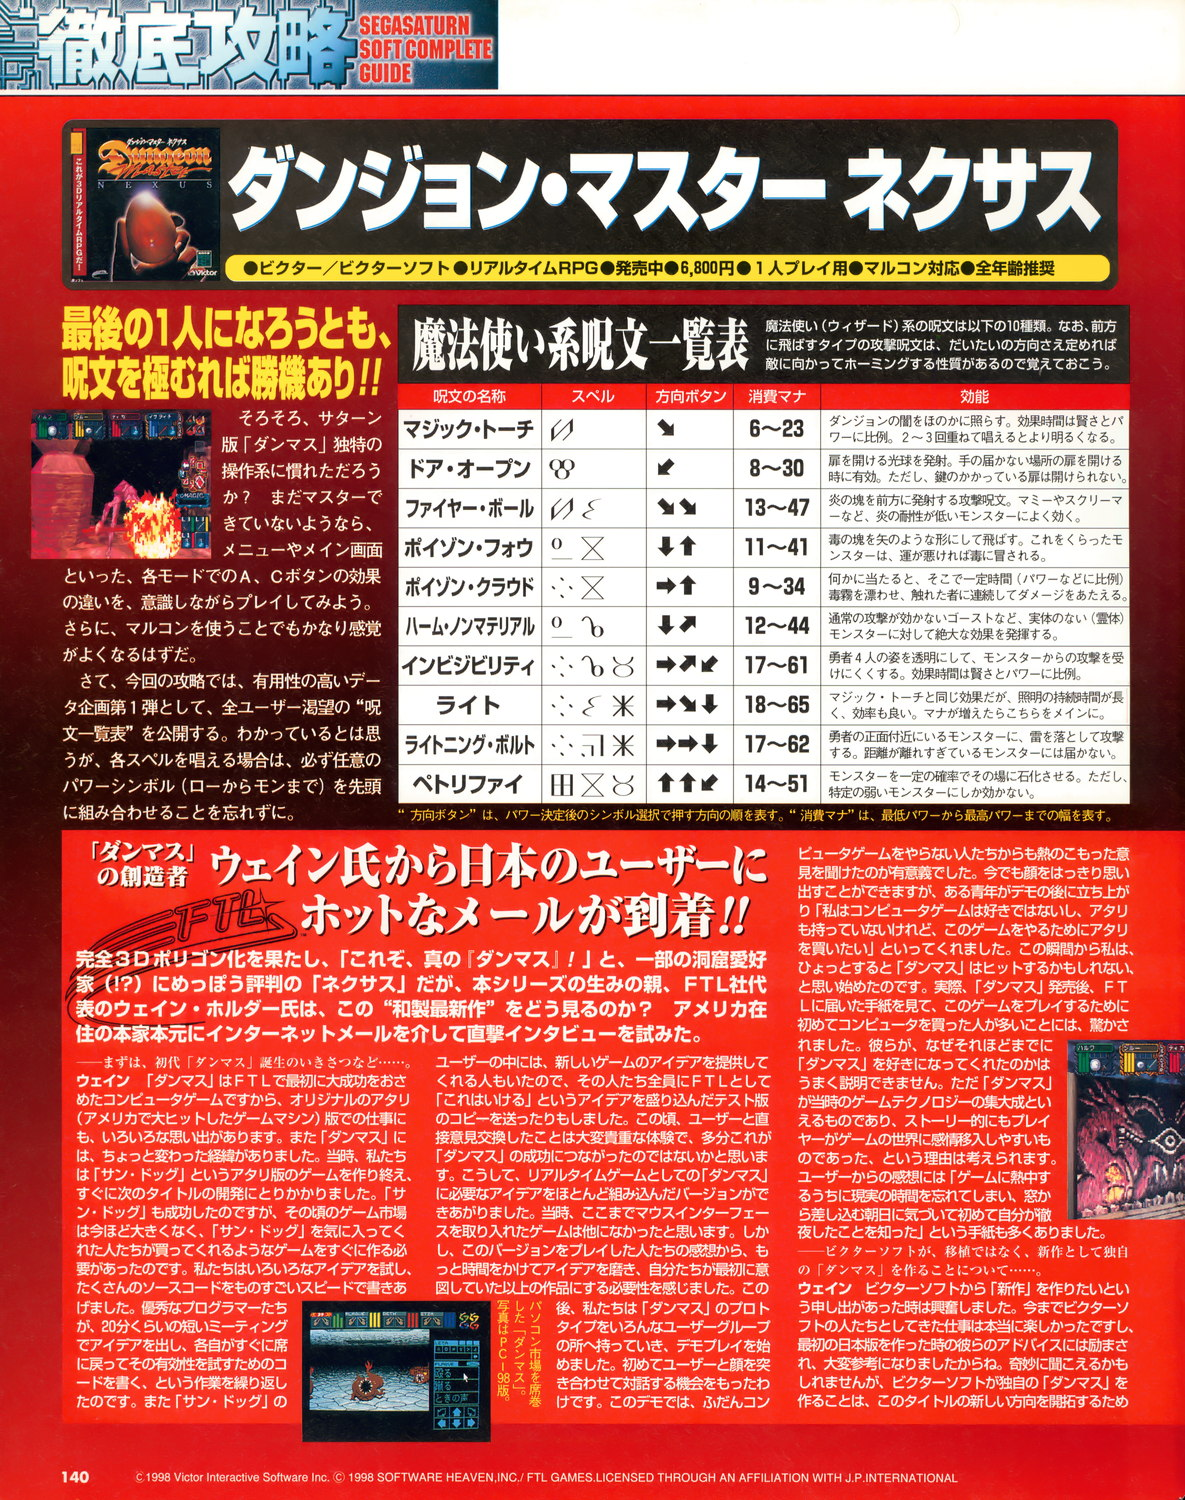 Dungeon Master Nexus Guide published in Japanese magazine 'Sega Saturn Magazine', Vol 12 24 April 1998, Page 140